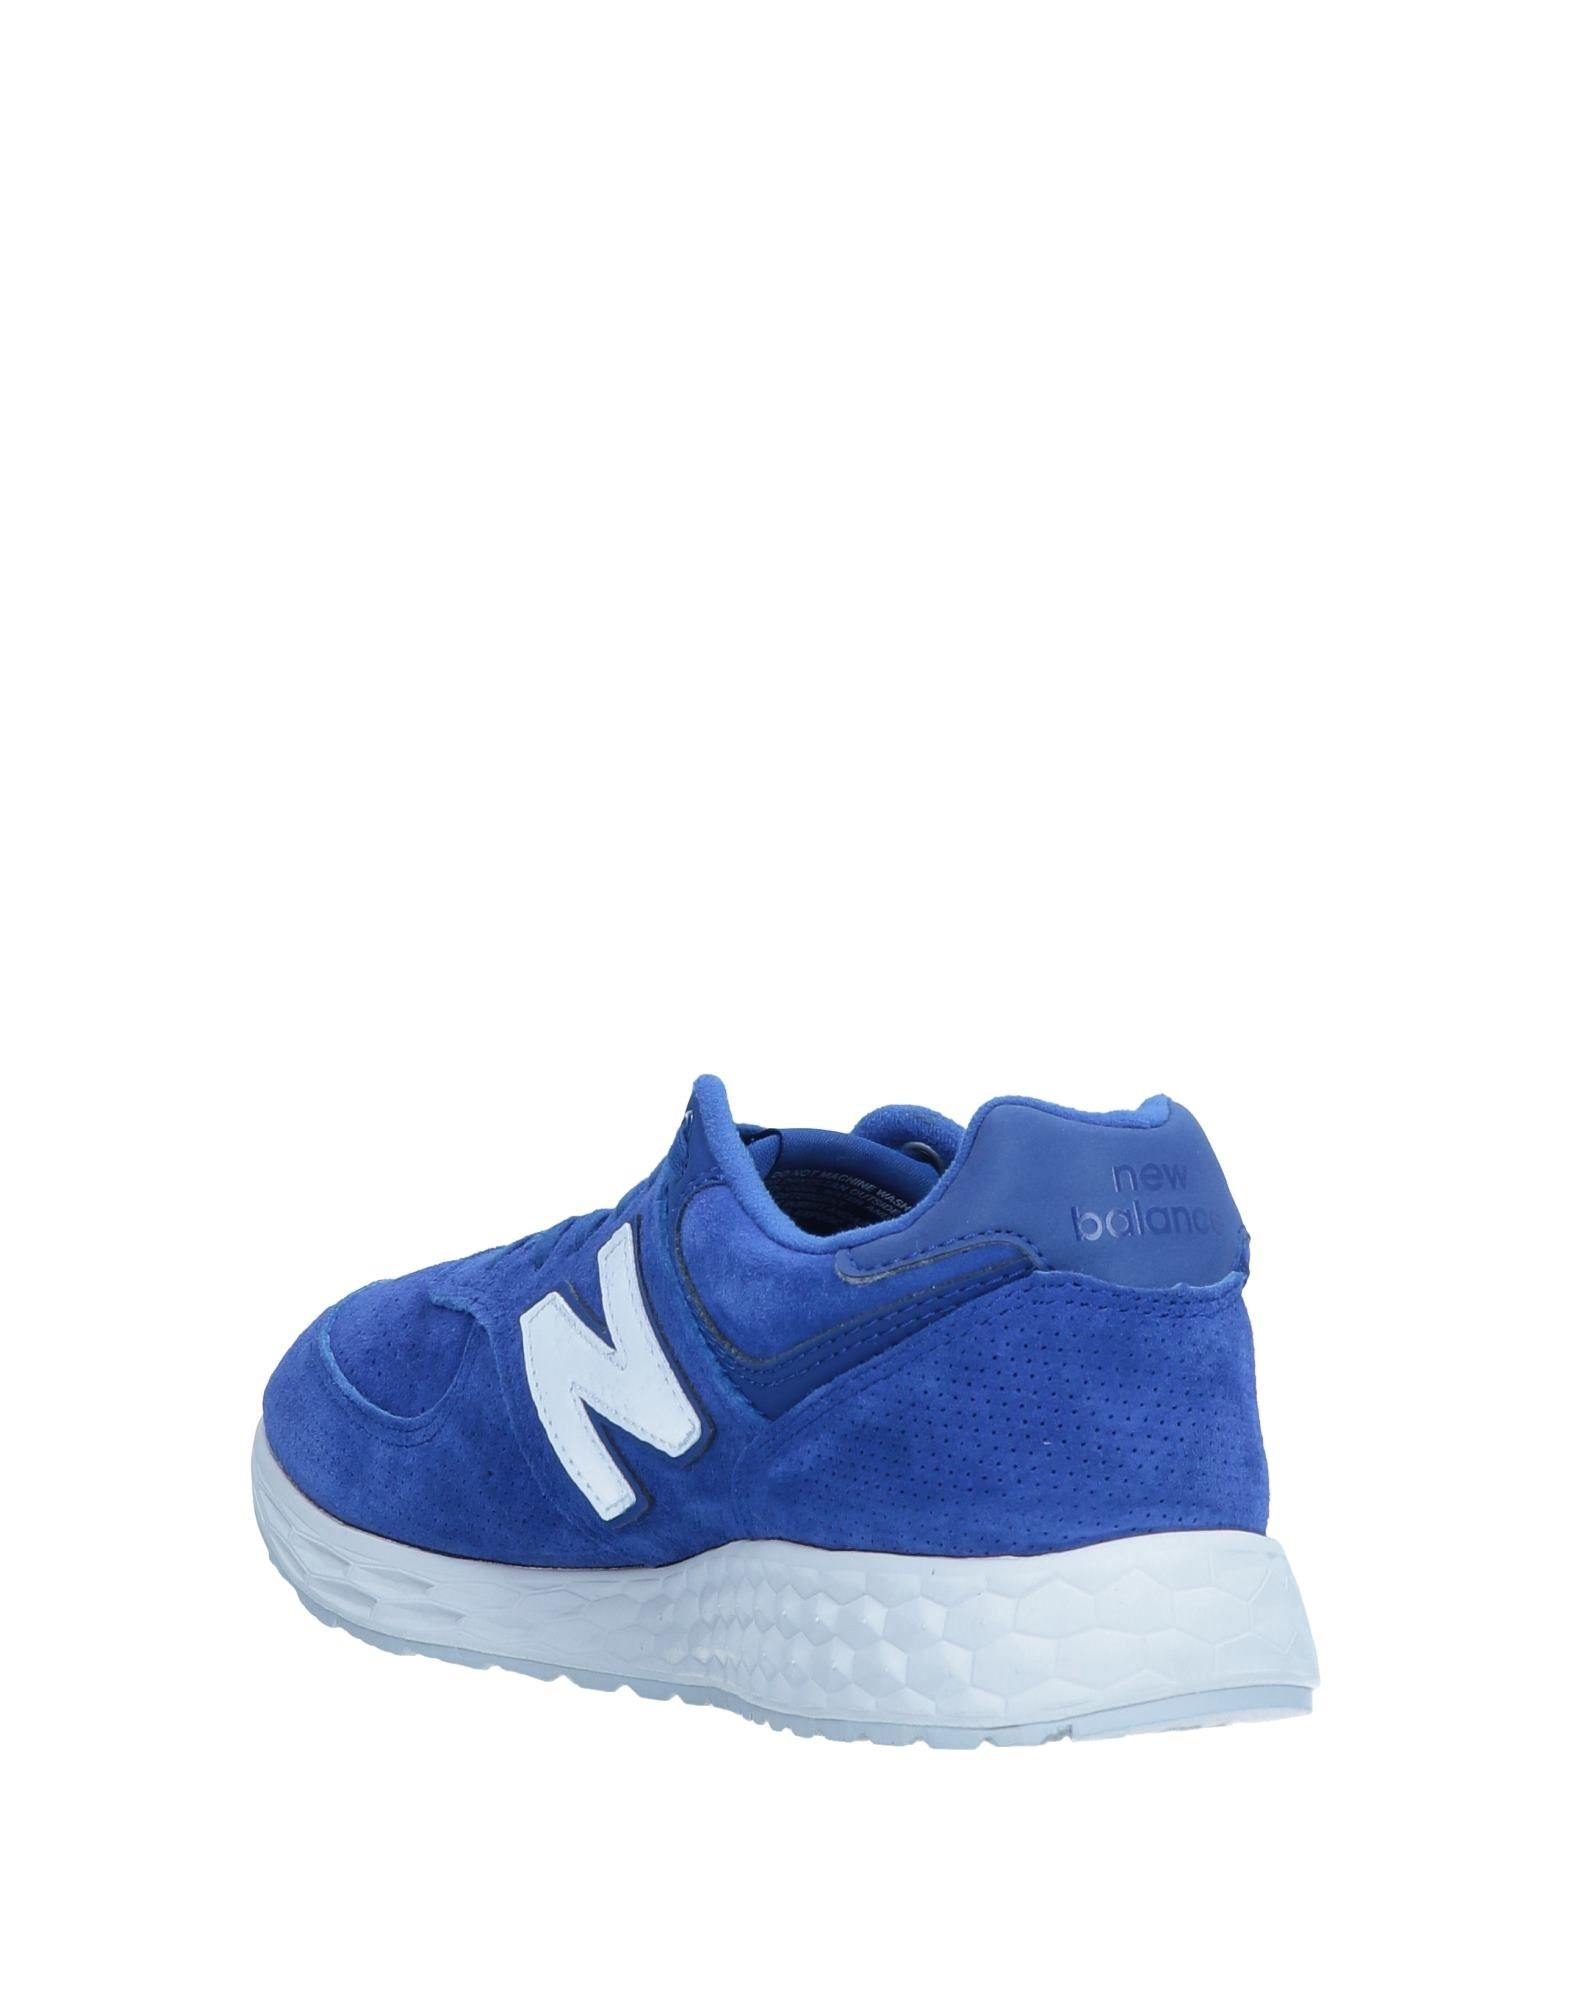 New Balance Sneakers - Men New Balance Sneakers online on on on  United Kingdom - 11556097VM b2a62d